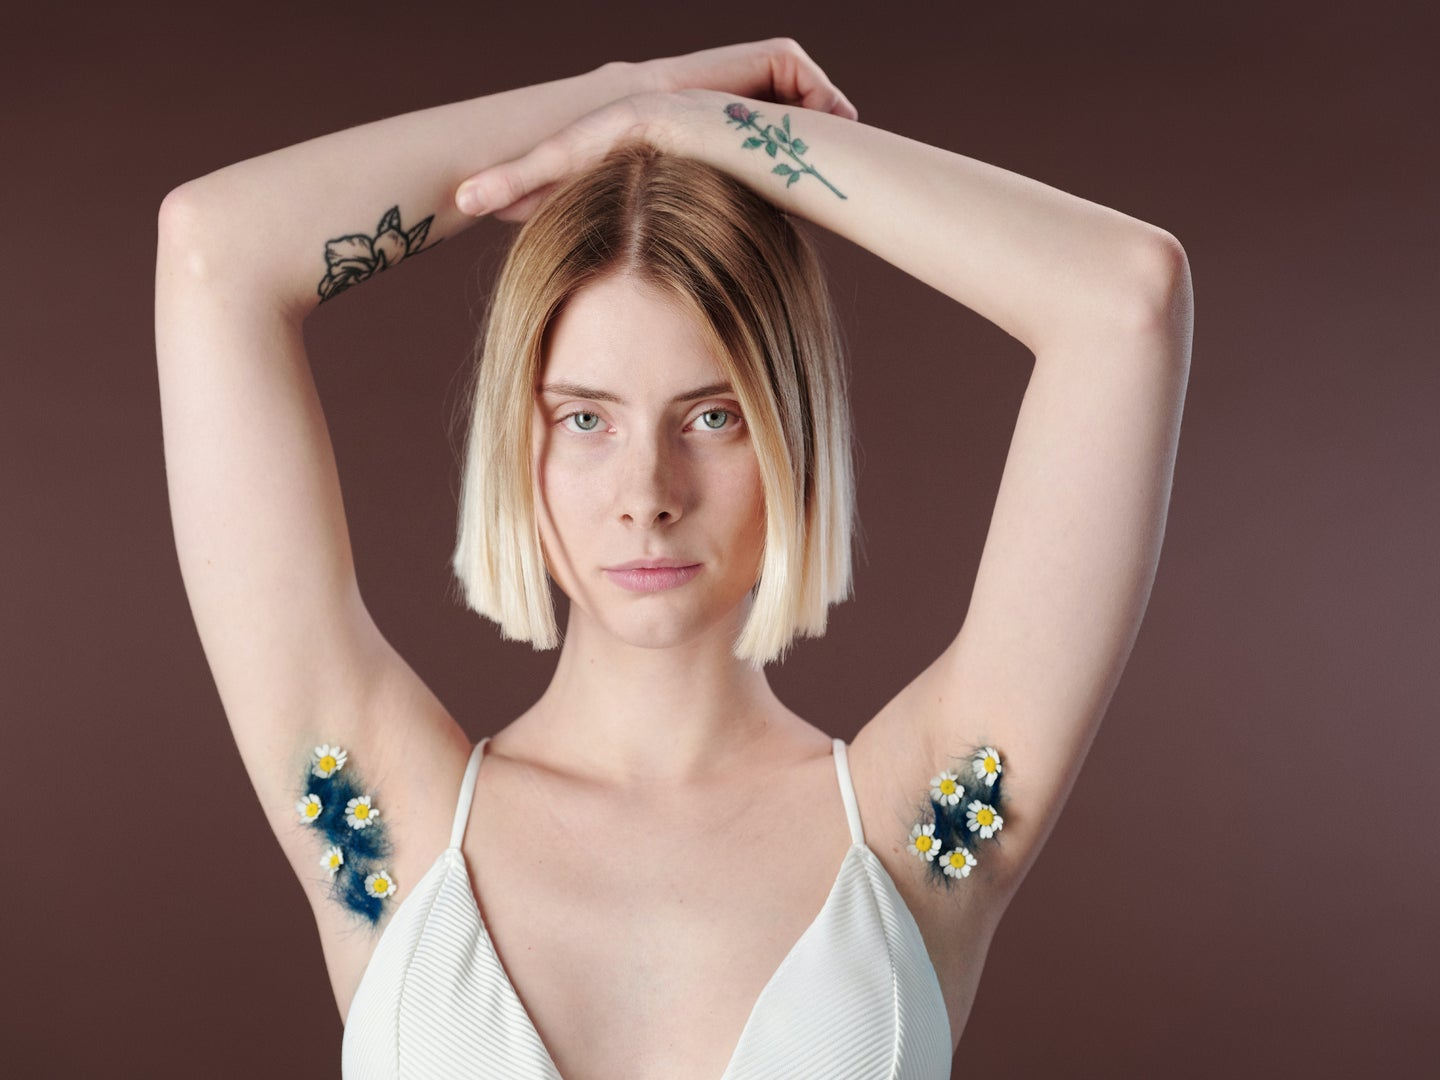 A blonde woman in a white top with her arms above her head and flowers in her armpits.